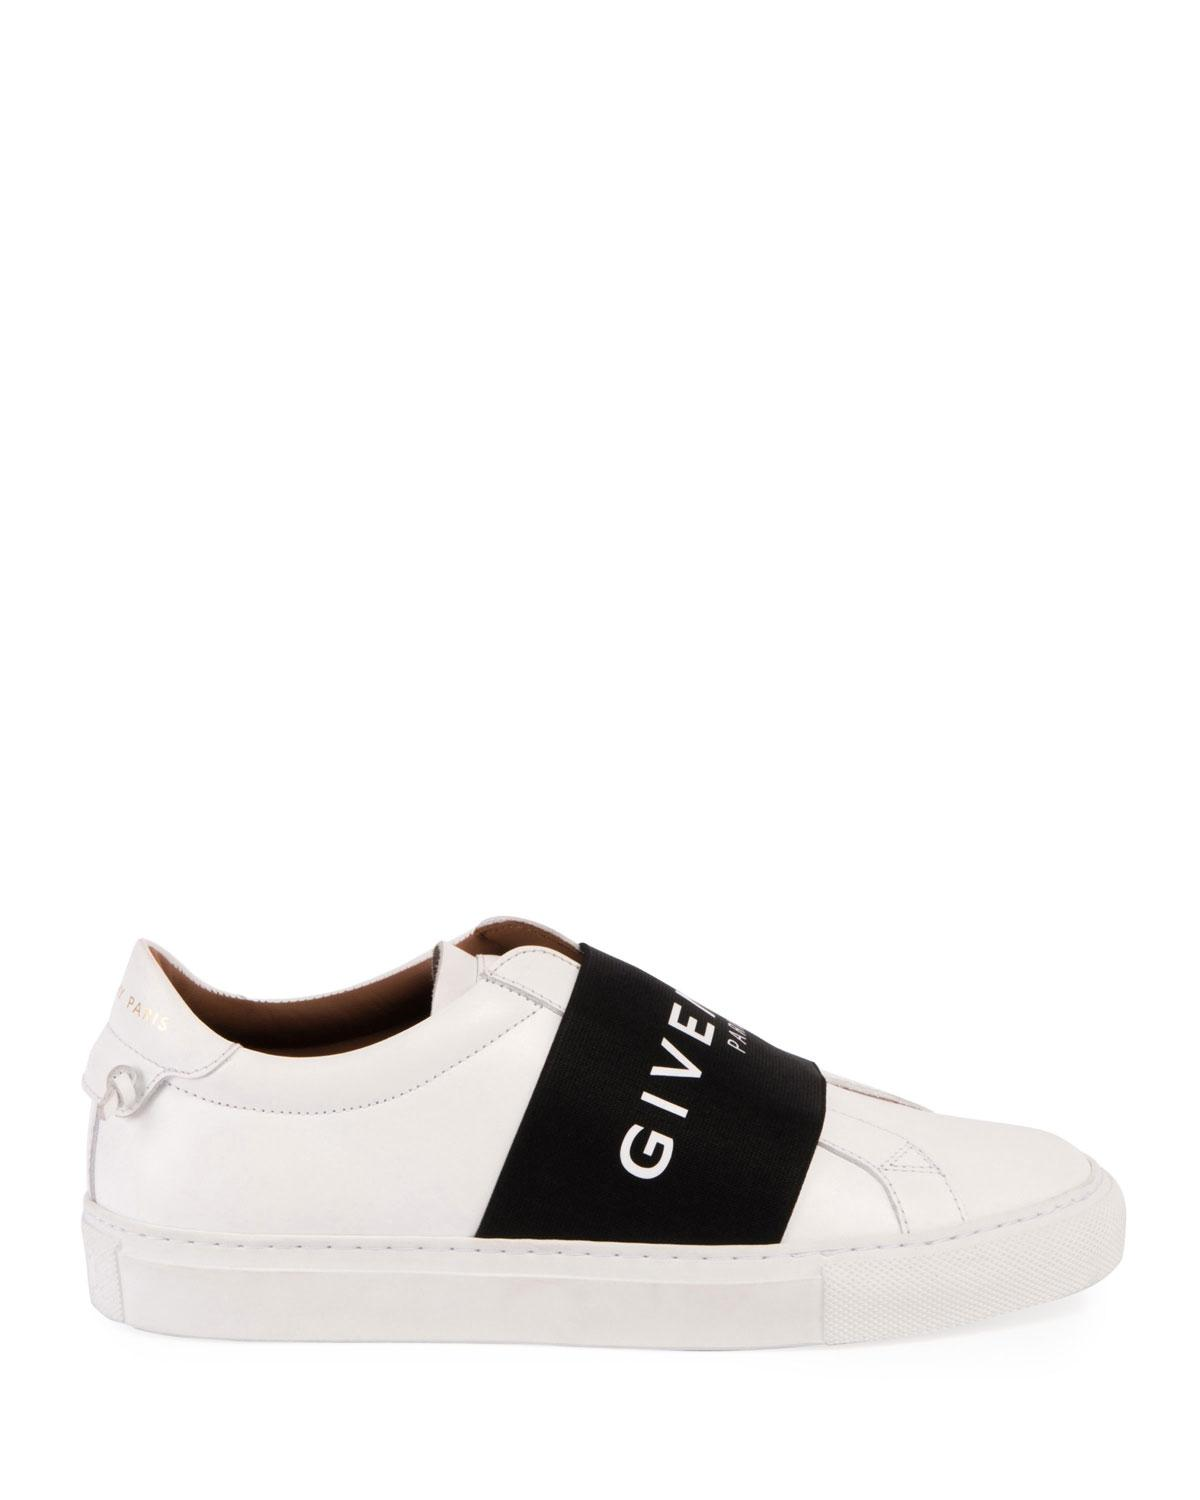 e718ada0219 ... Givenchy White Urban Knot Logo Logo Logo Band Leather Sneakers 35  Sneakers Size US 5 Regular ...